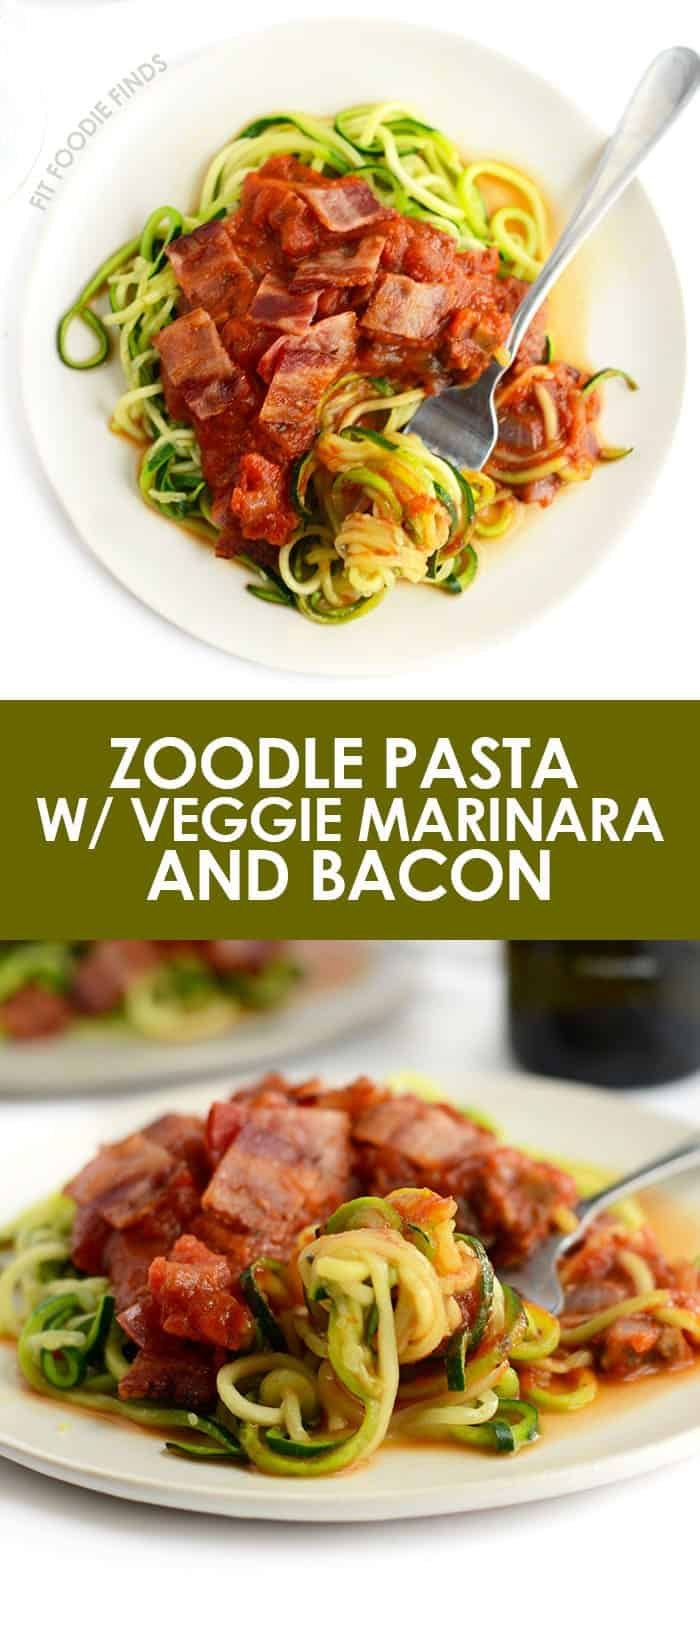 Make this zoodle pasta with a veggie-filled marinara sauce topped with crunchy bacon pieces for a low-carb, 30-minute meal that's healthy and delicious!